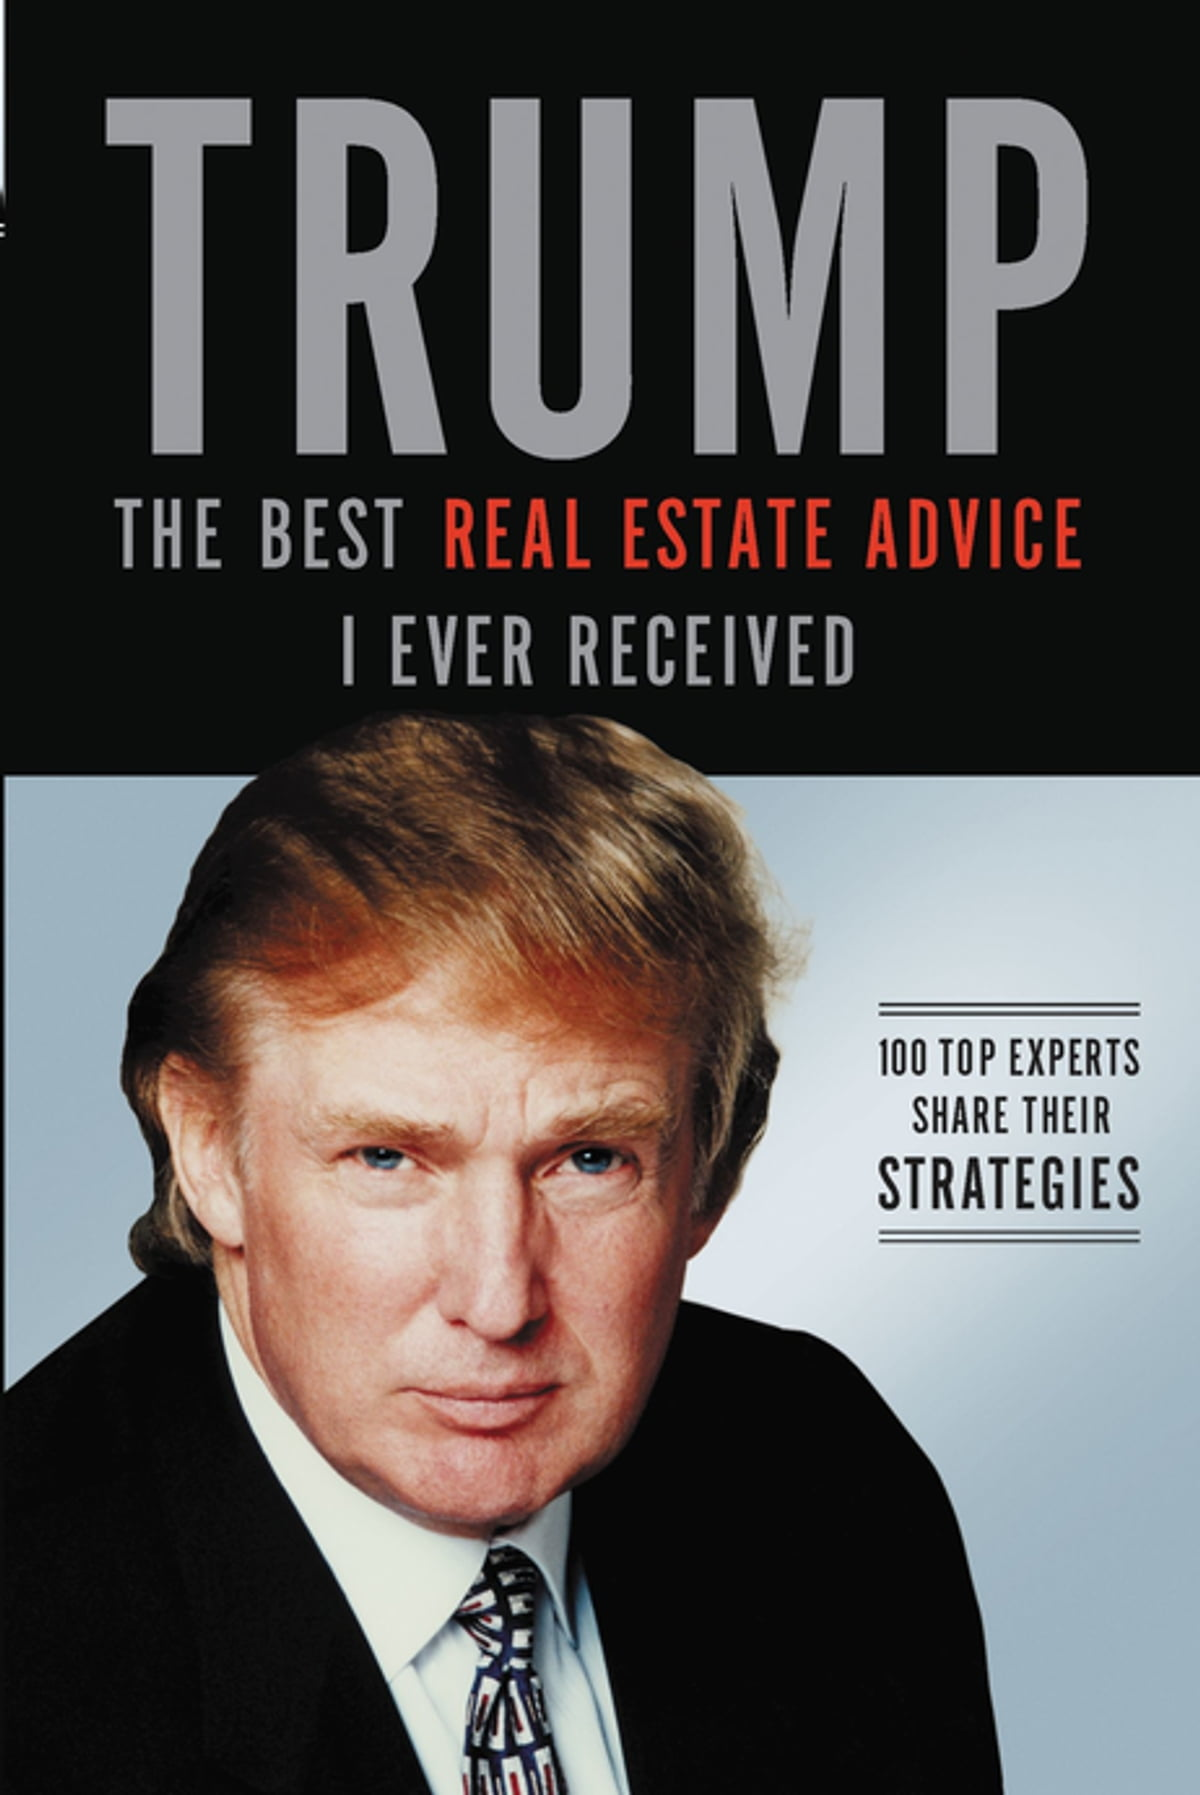 Trump: The Best Real Estate Advice I Ever Received eBook by Donald J. Trump  - 9781400207664 | Rakuten Kobo